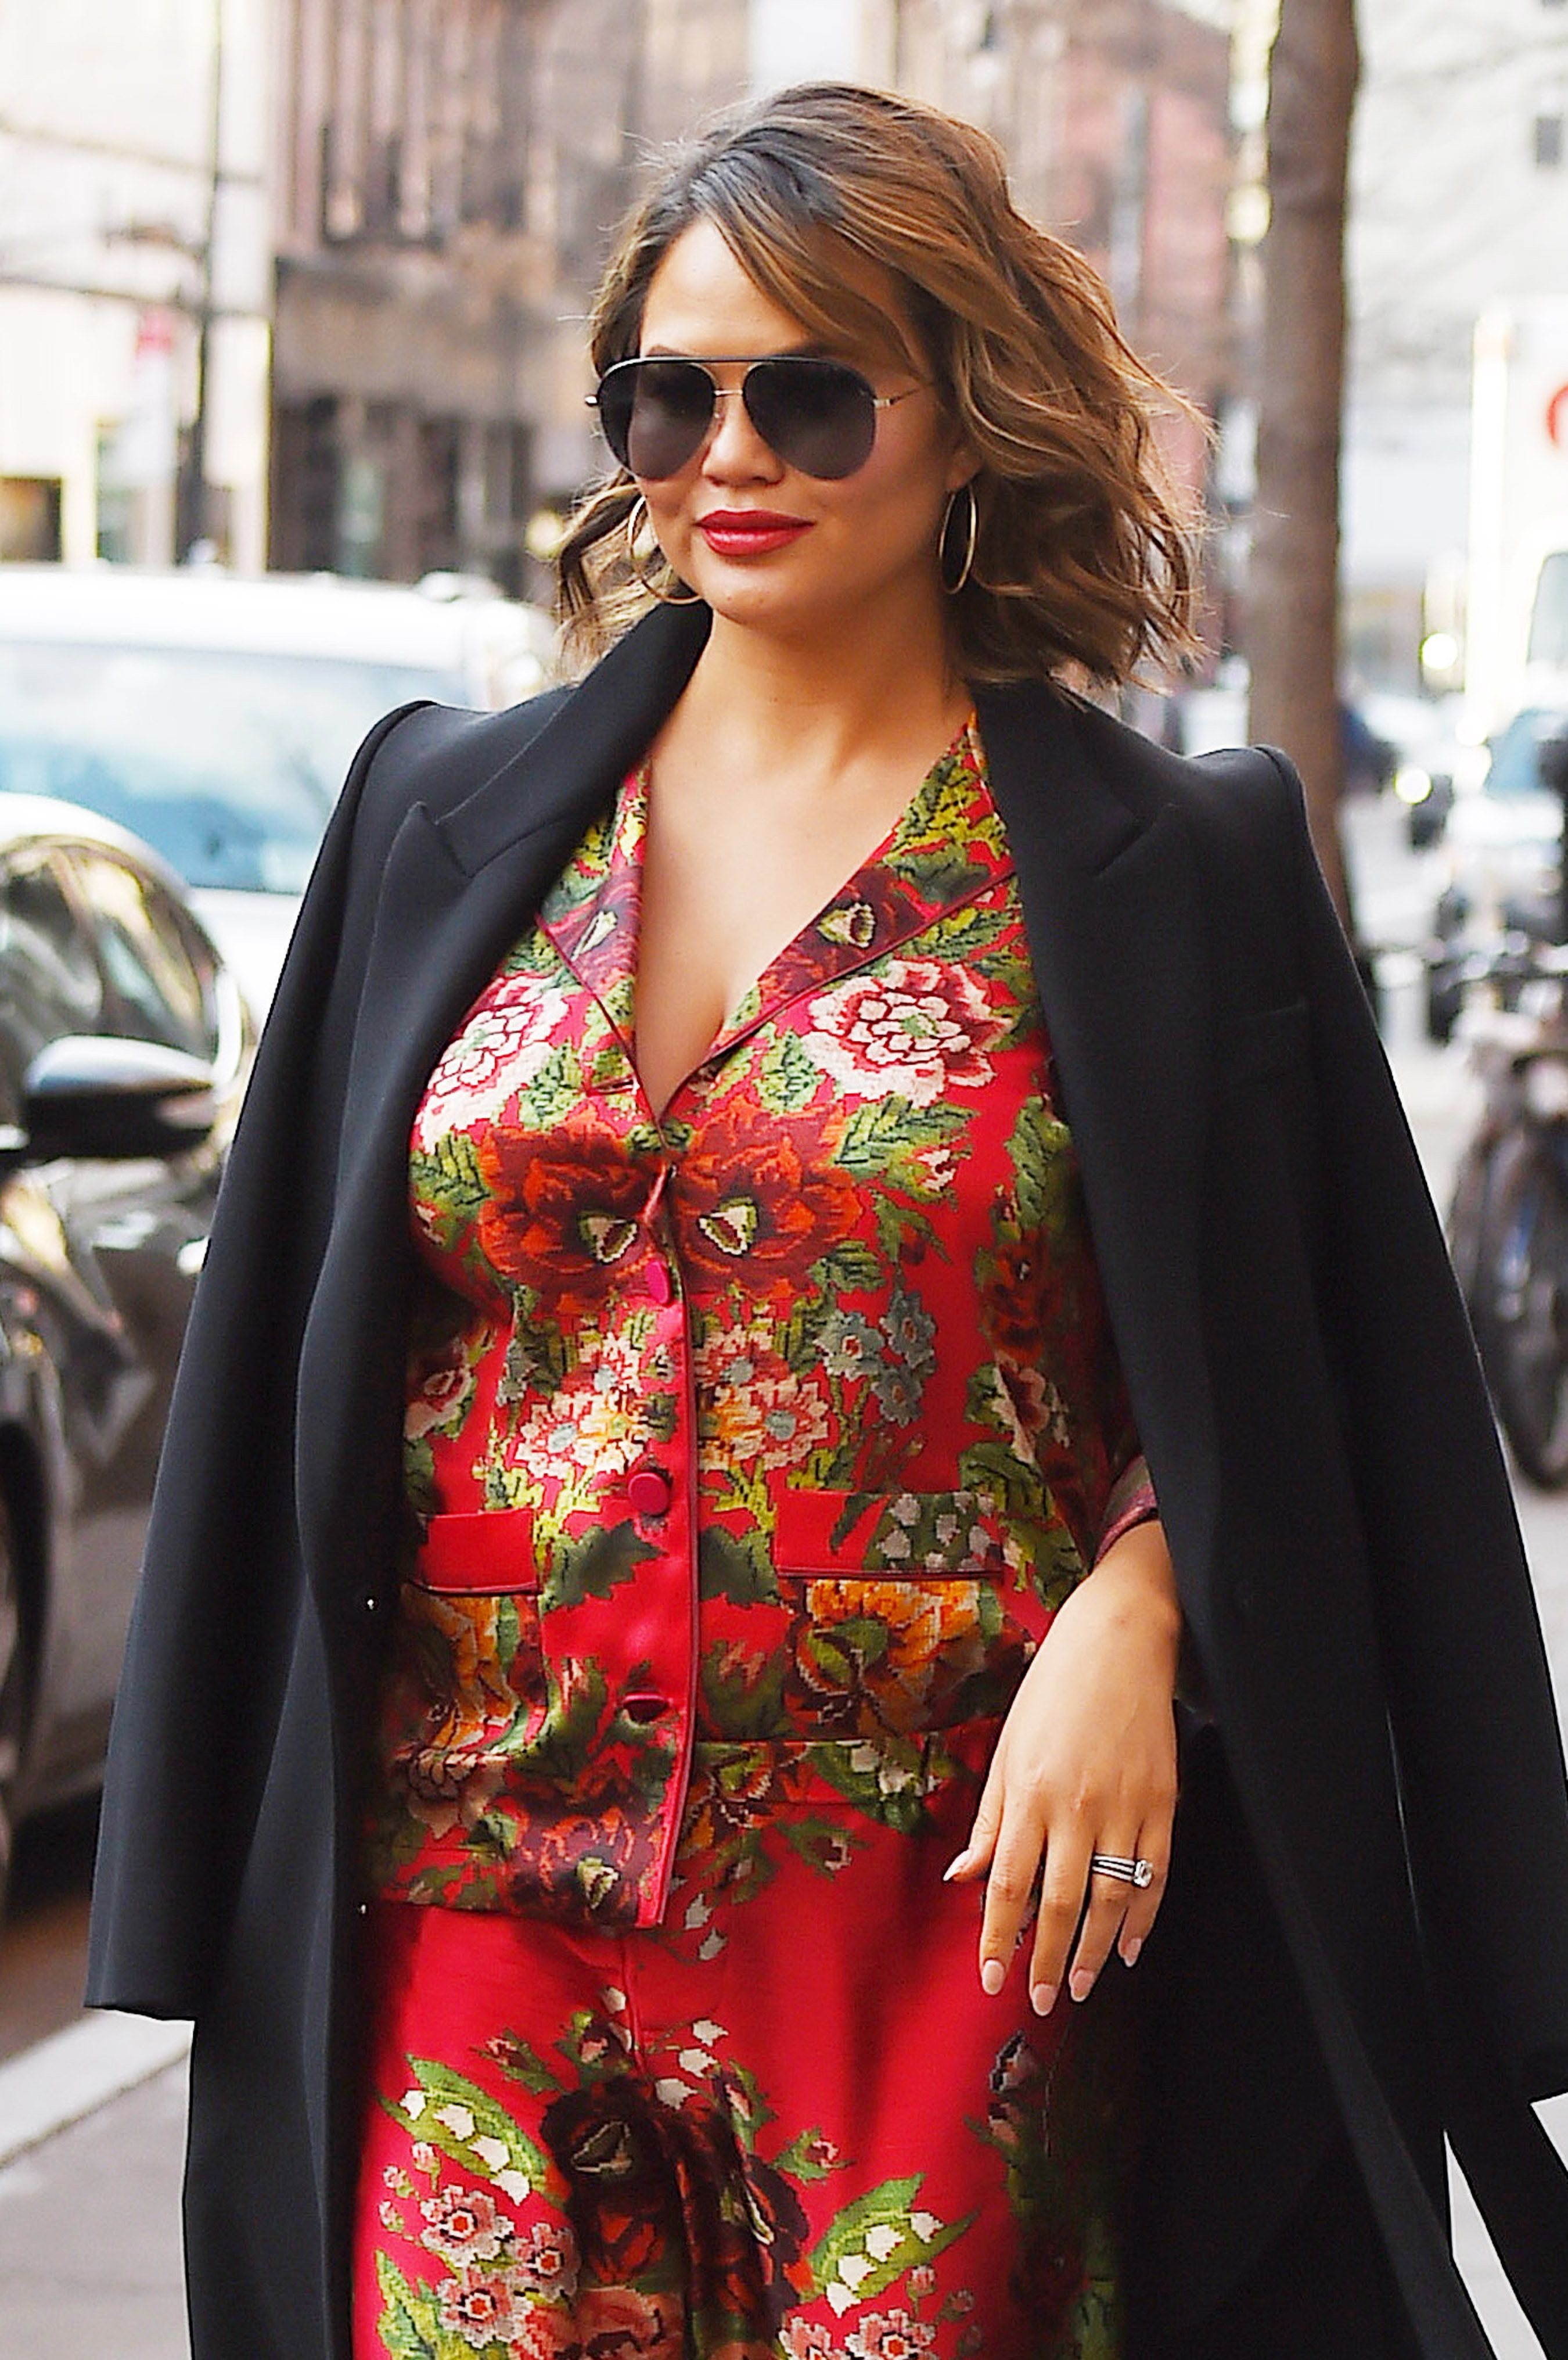 NEW YORK, NY - FEBRUARY 28: Chrissy Teigen seen on the streets of Manhattan on February 28, 2018 in New York City. (Photo by Josiah Kamau/BuzzFoto via Getty Images)